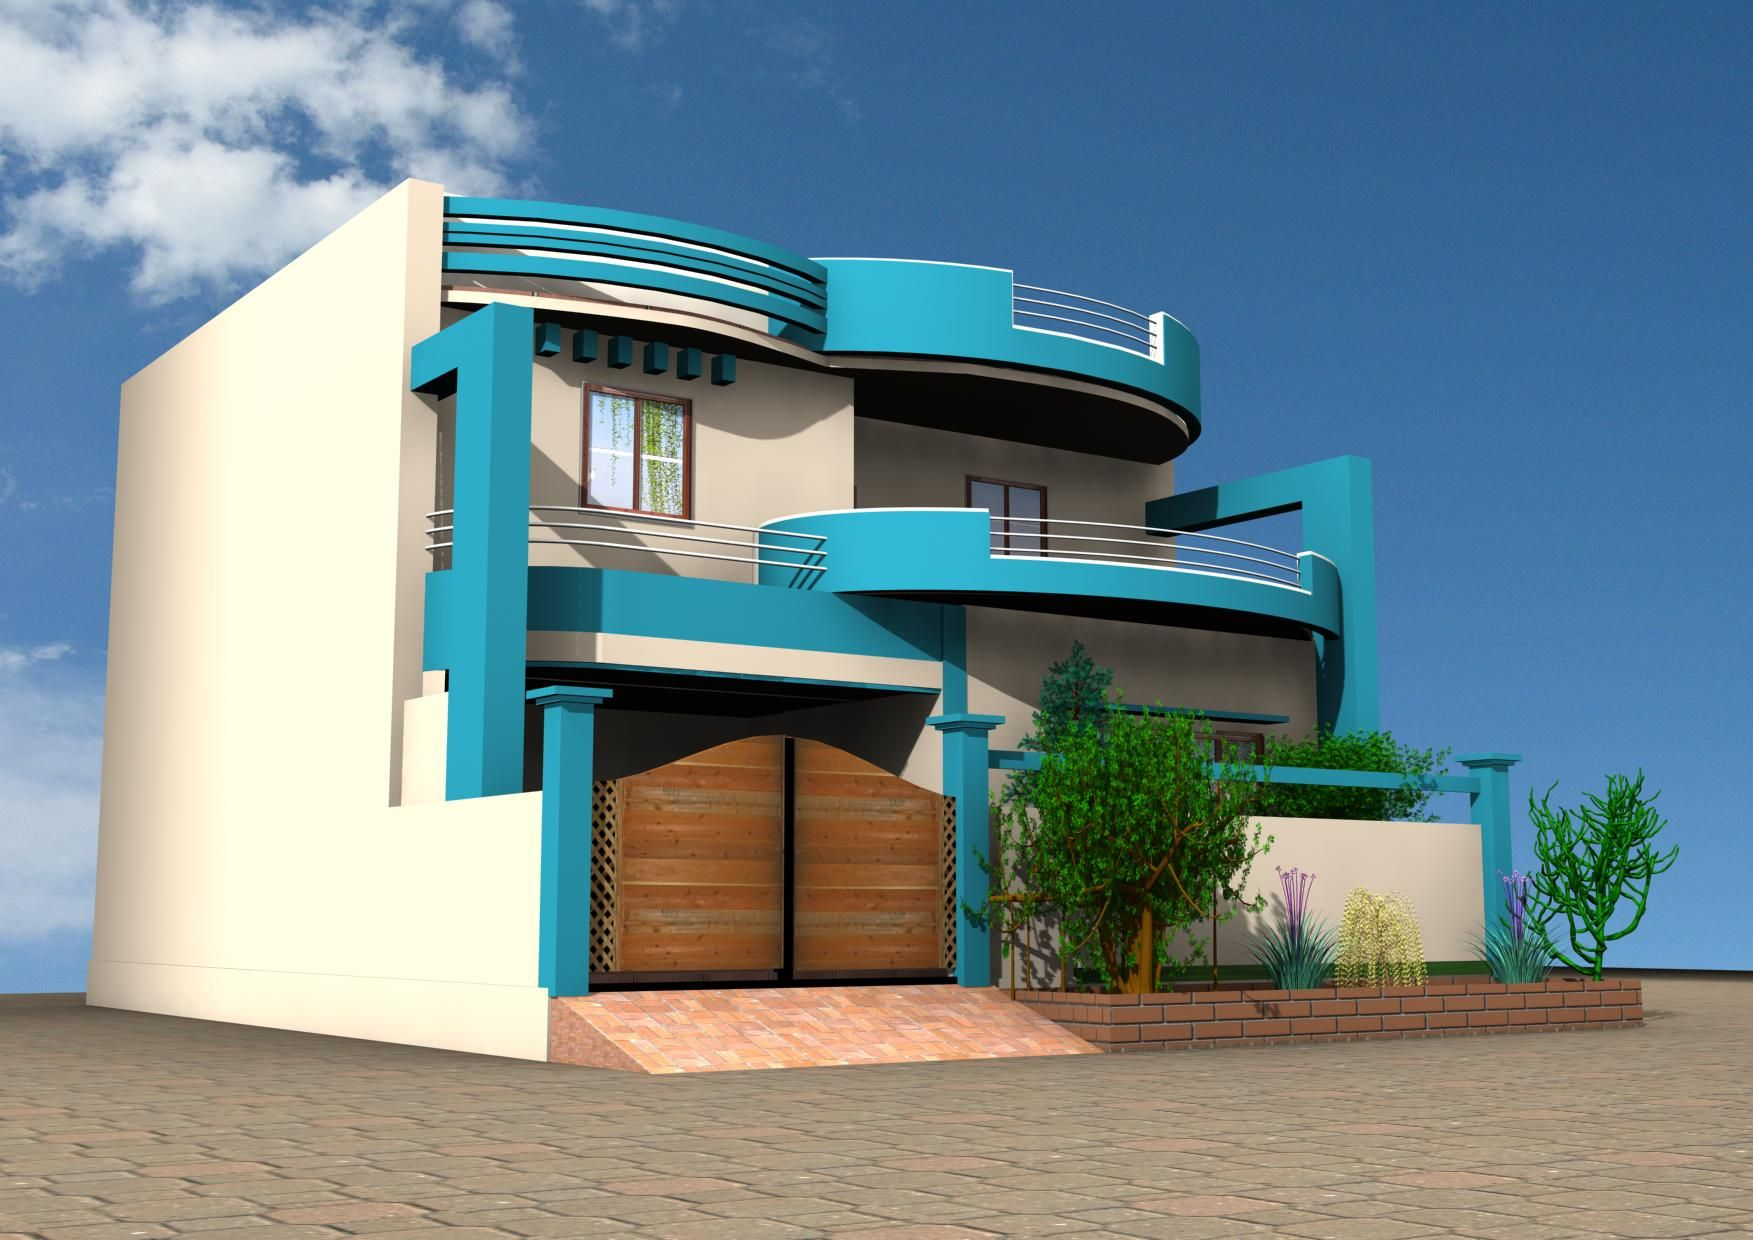 3d home design images hd 1080p Simple house design software